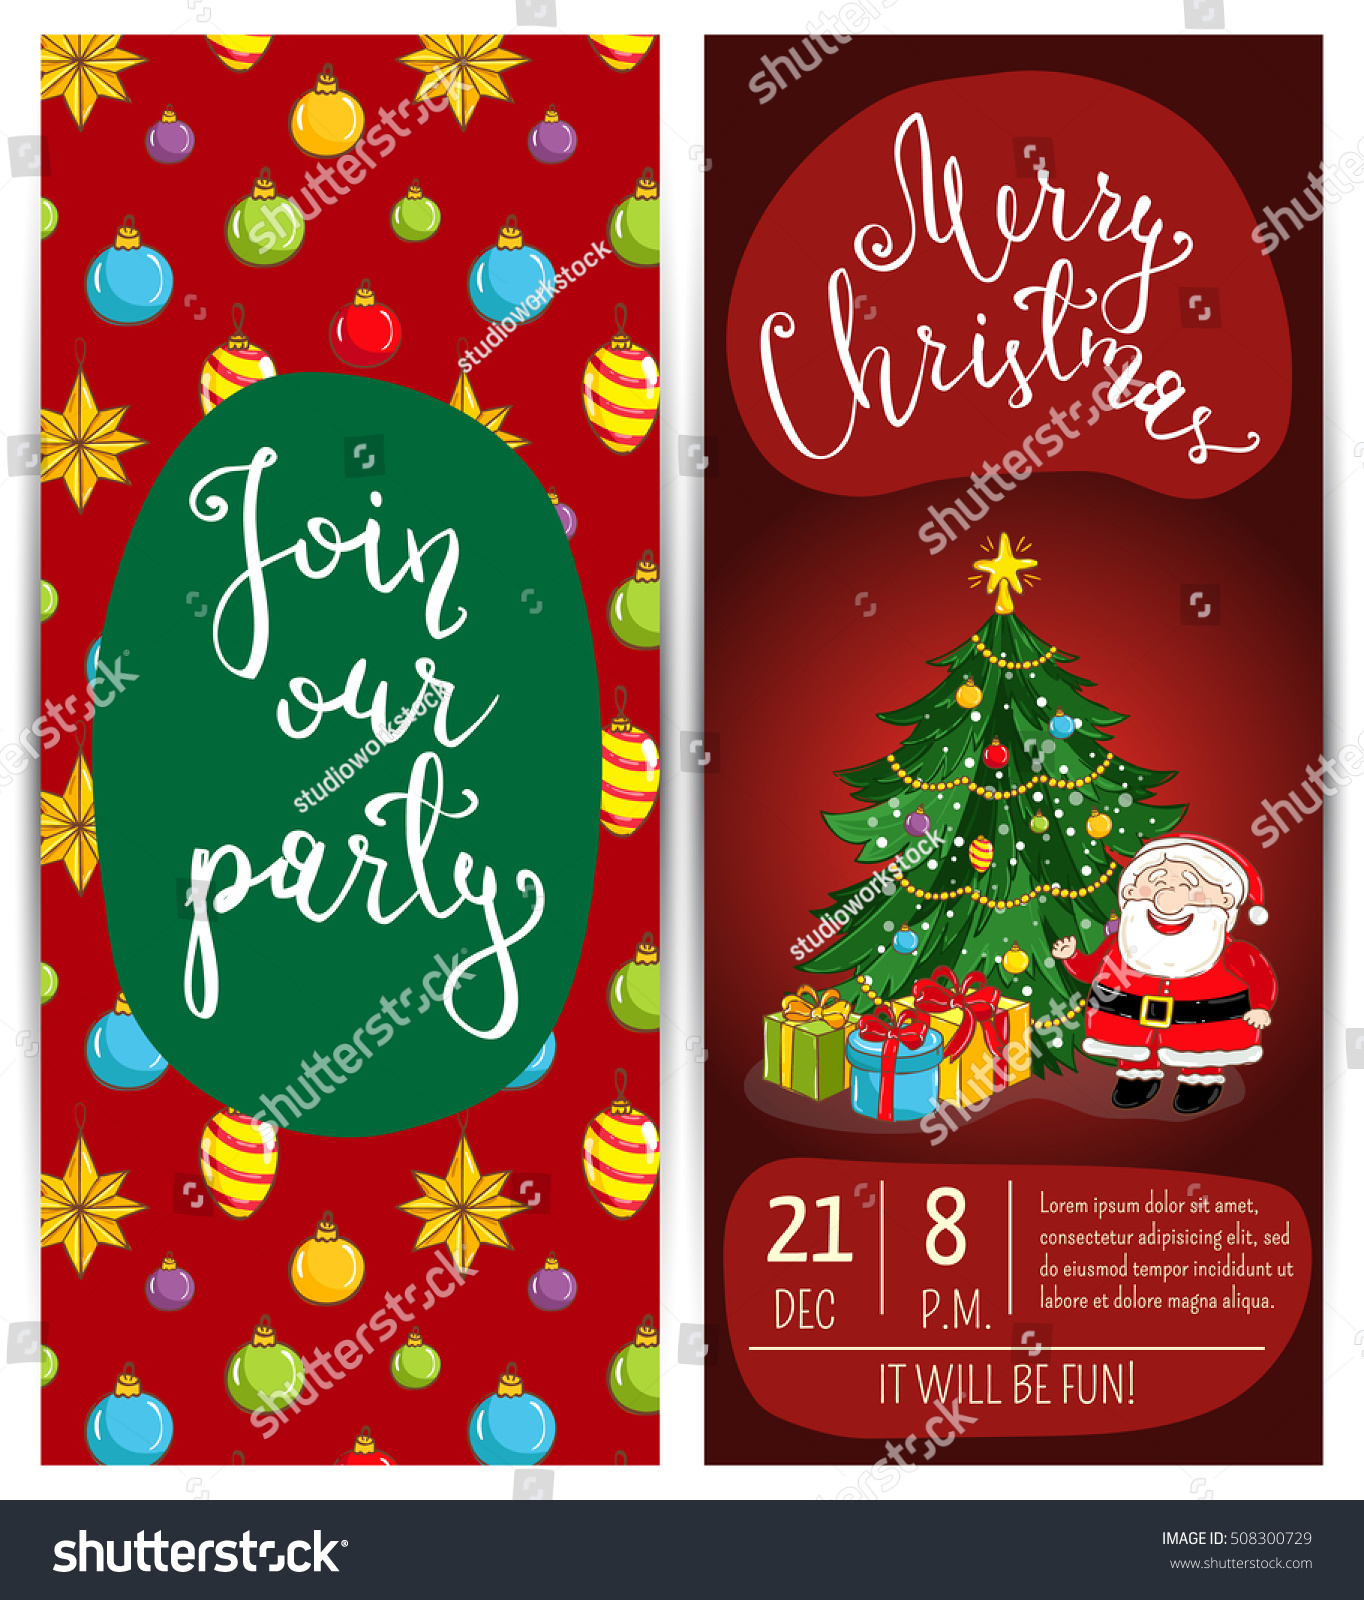 Merry christmas happy new year greetings stock vector royalty free merry christmas and happy new year greetings card template of christmas party invitation m4hsunfo